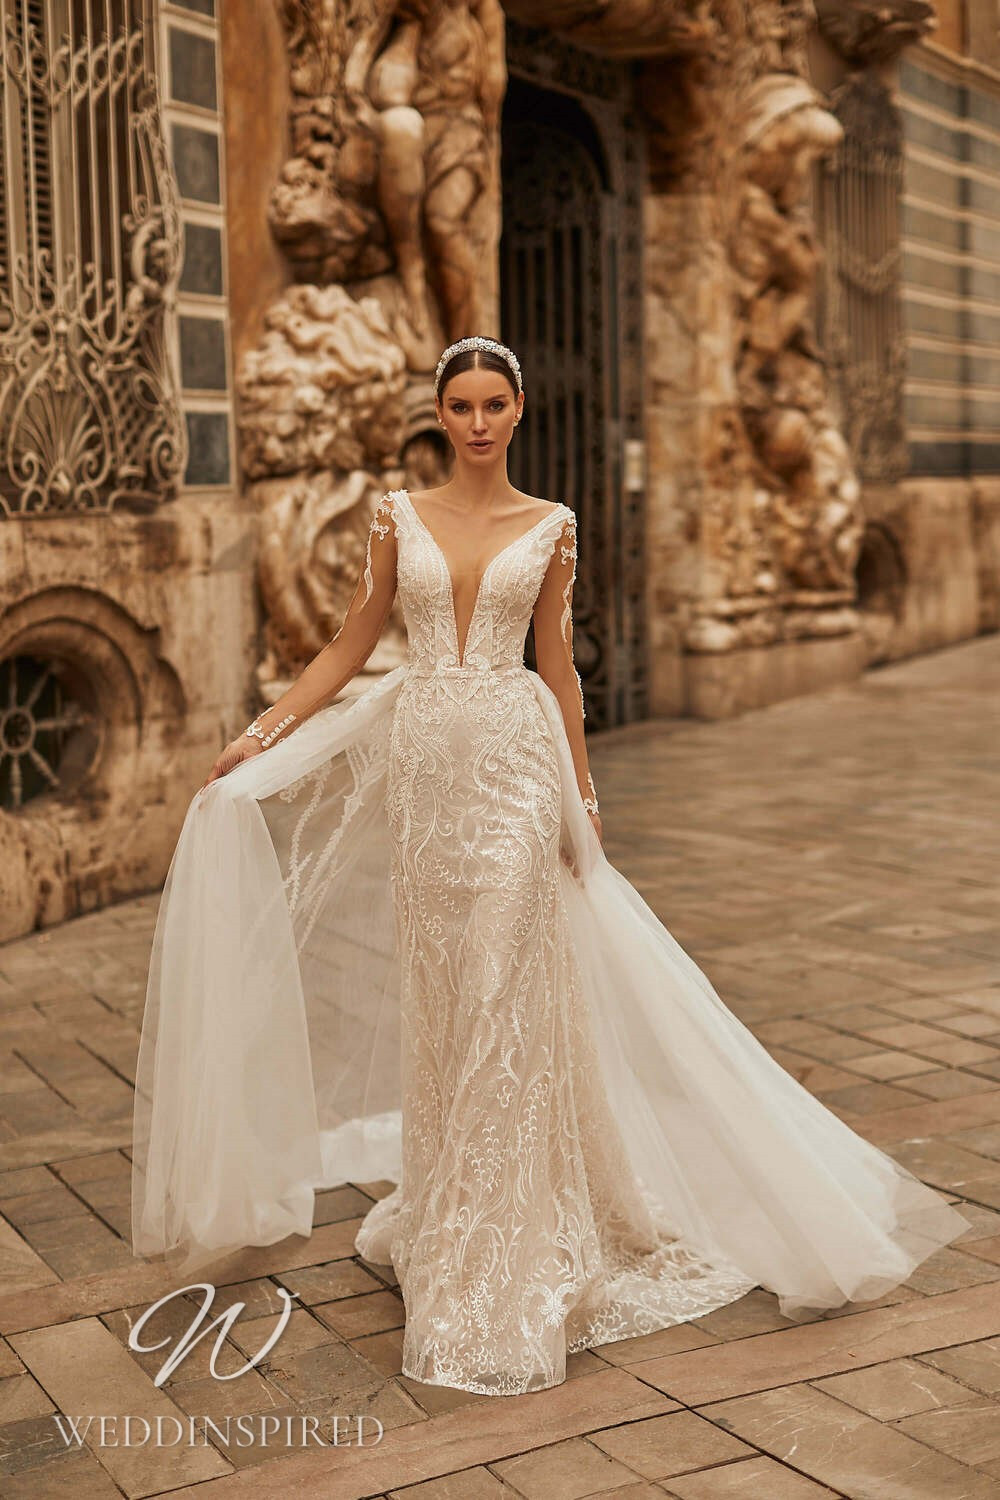 A Royal by Naviblue 2021 lace and tulle mermaid wedding dress with a detachable skirt